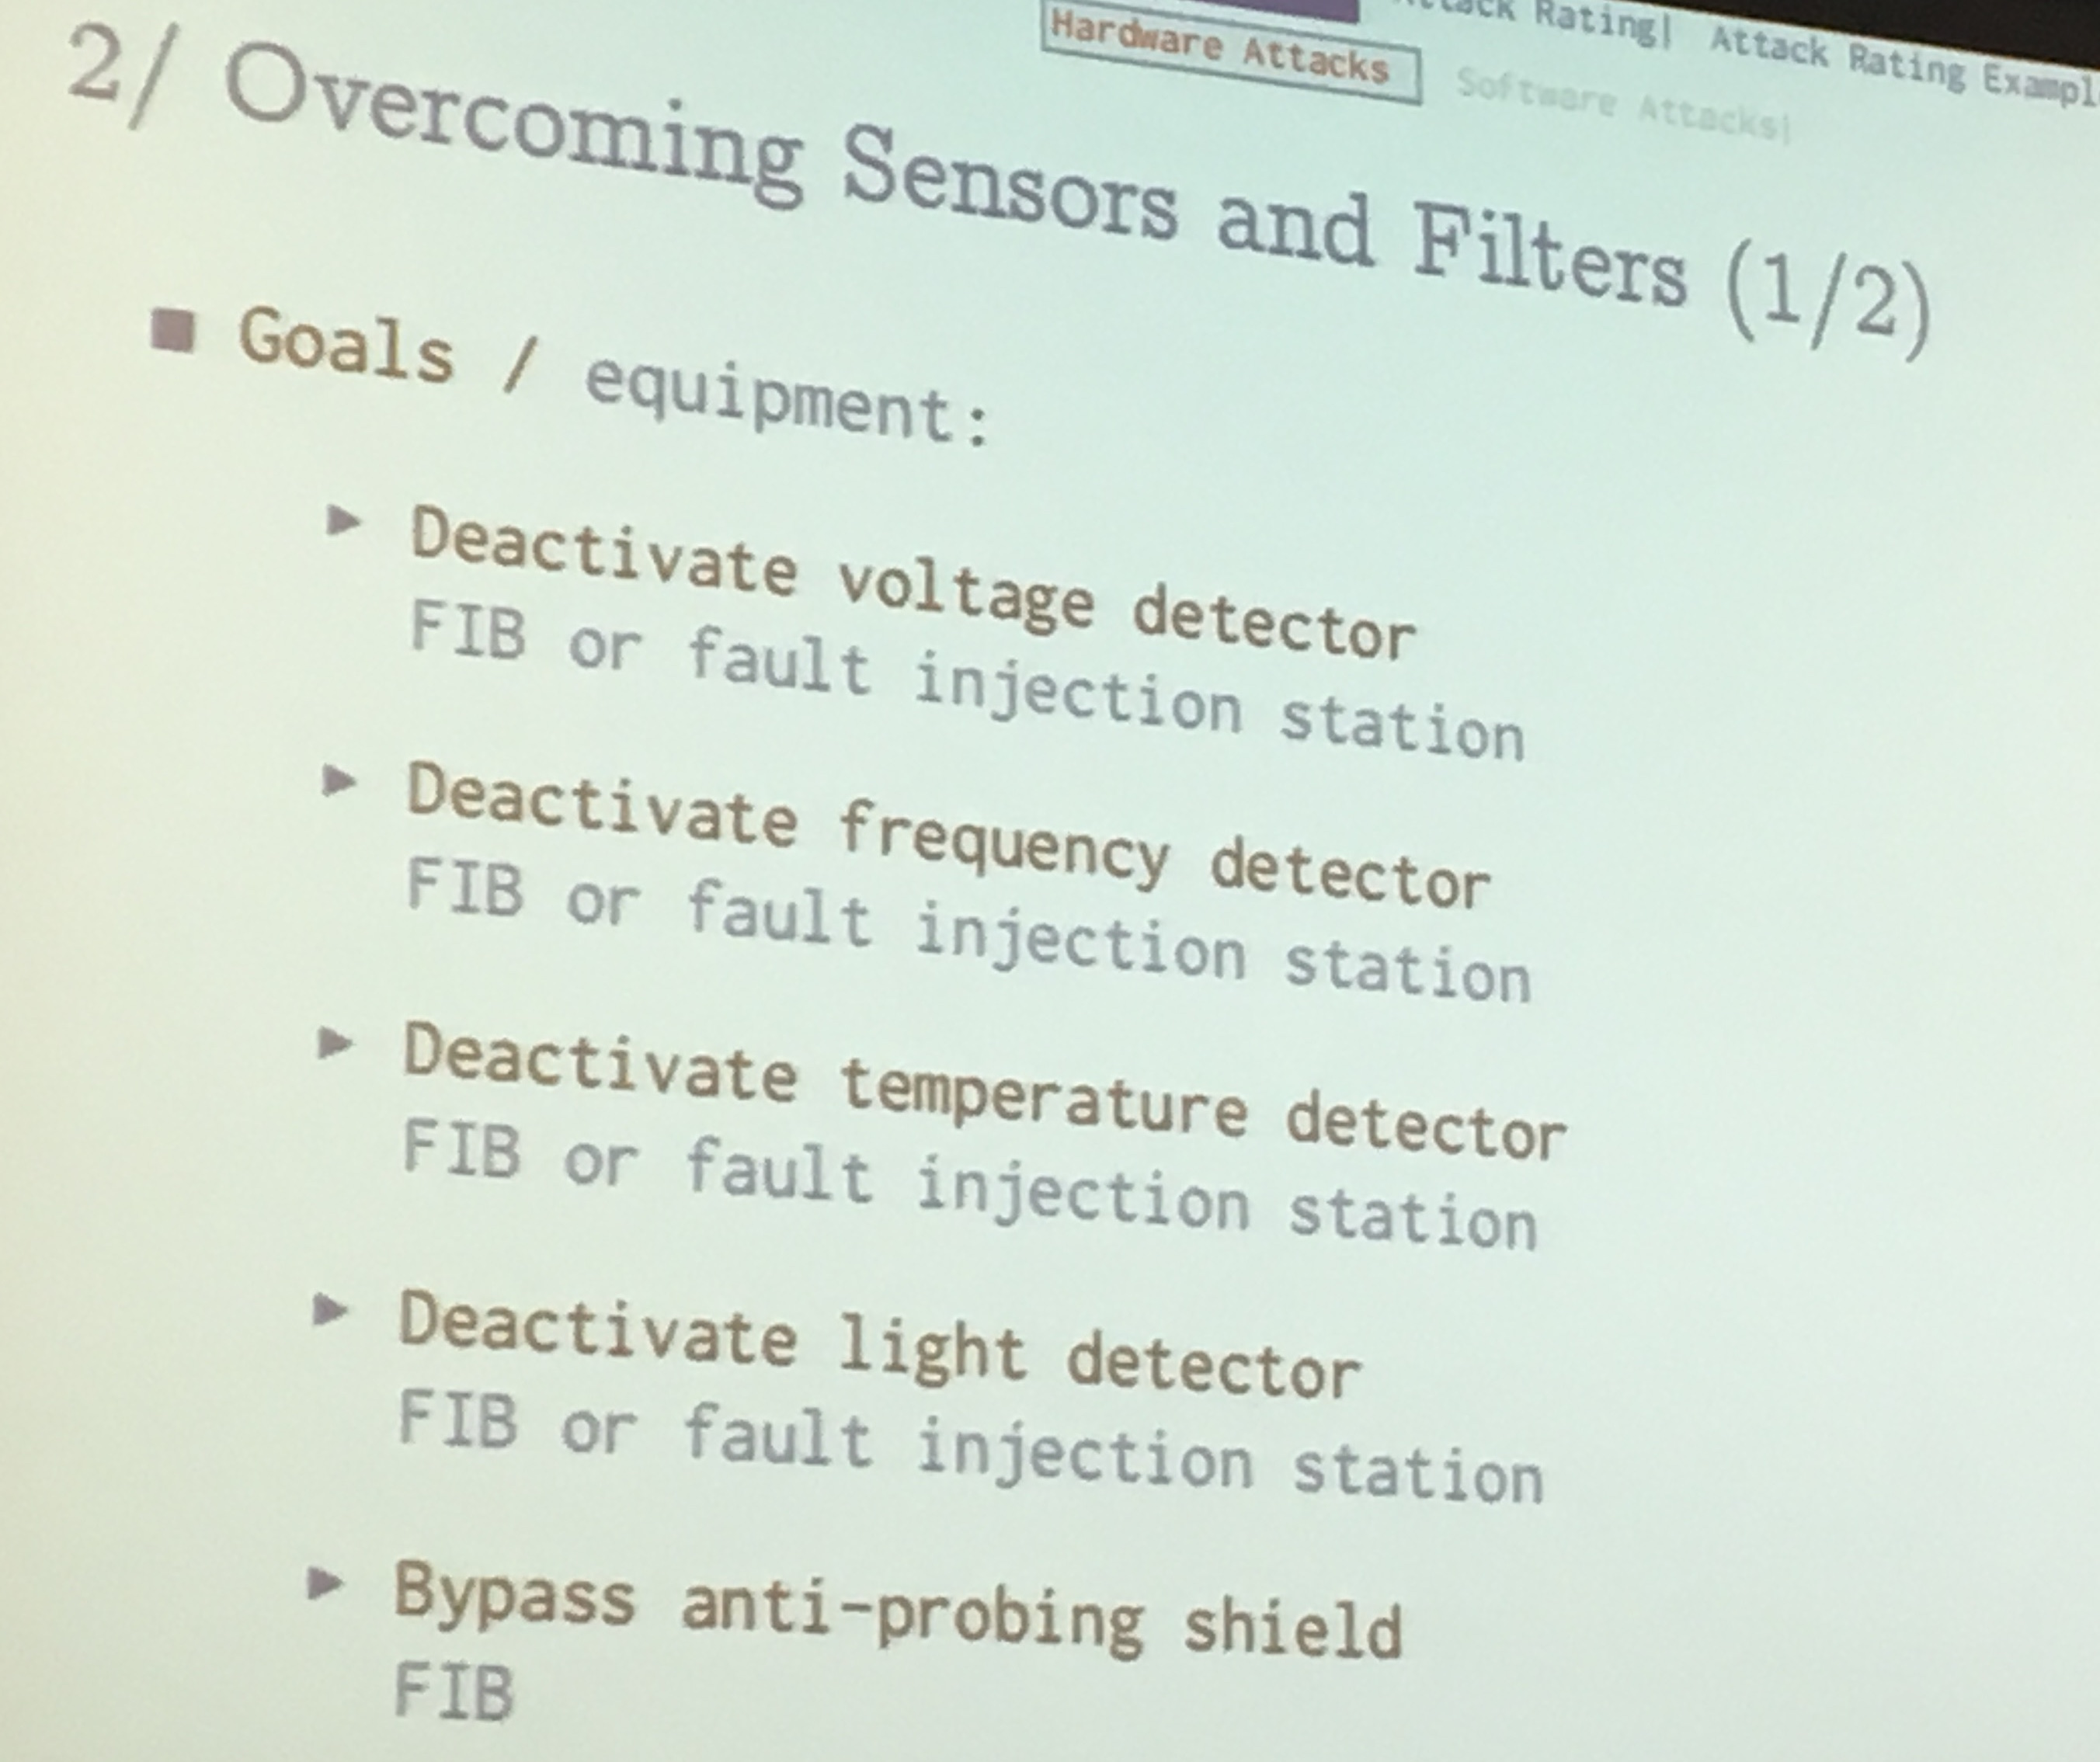 overcoming sensors and filters